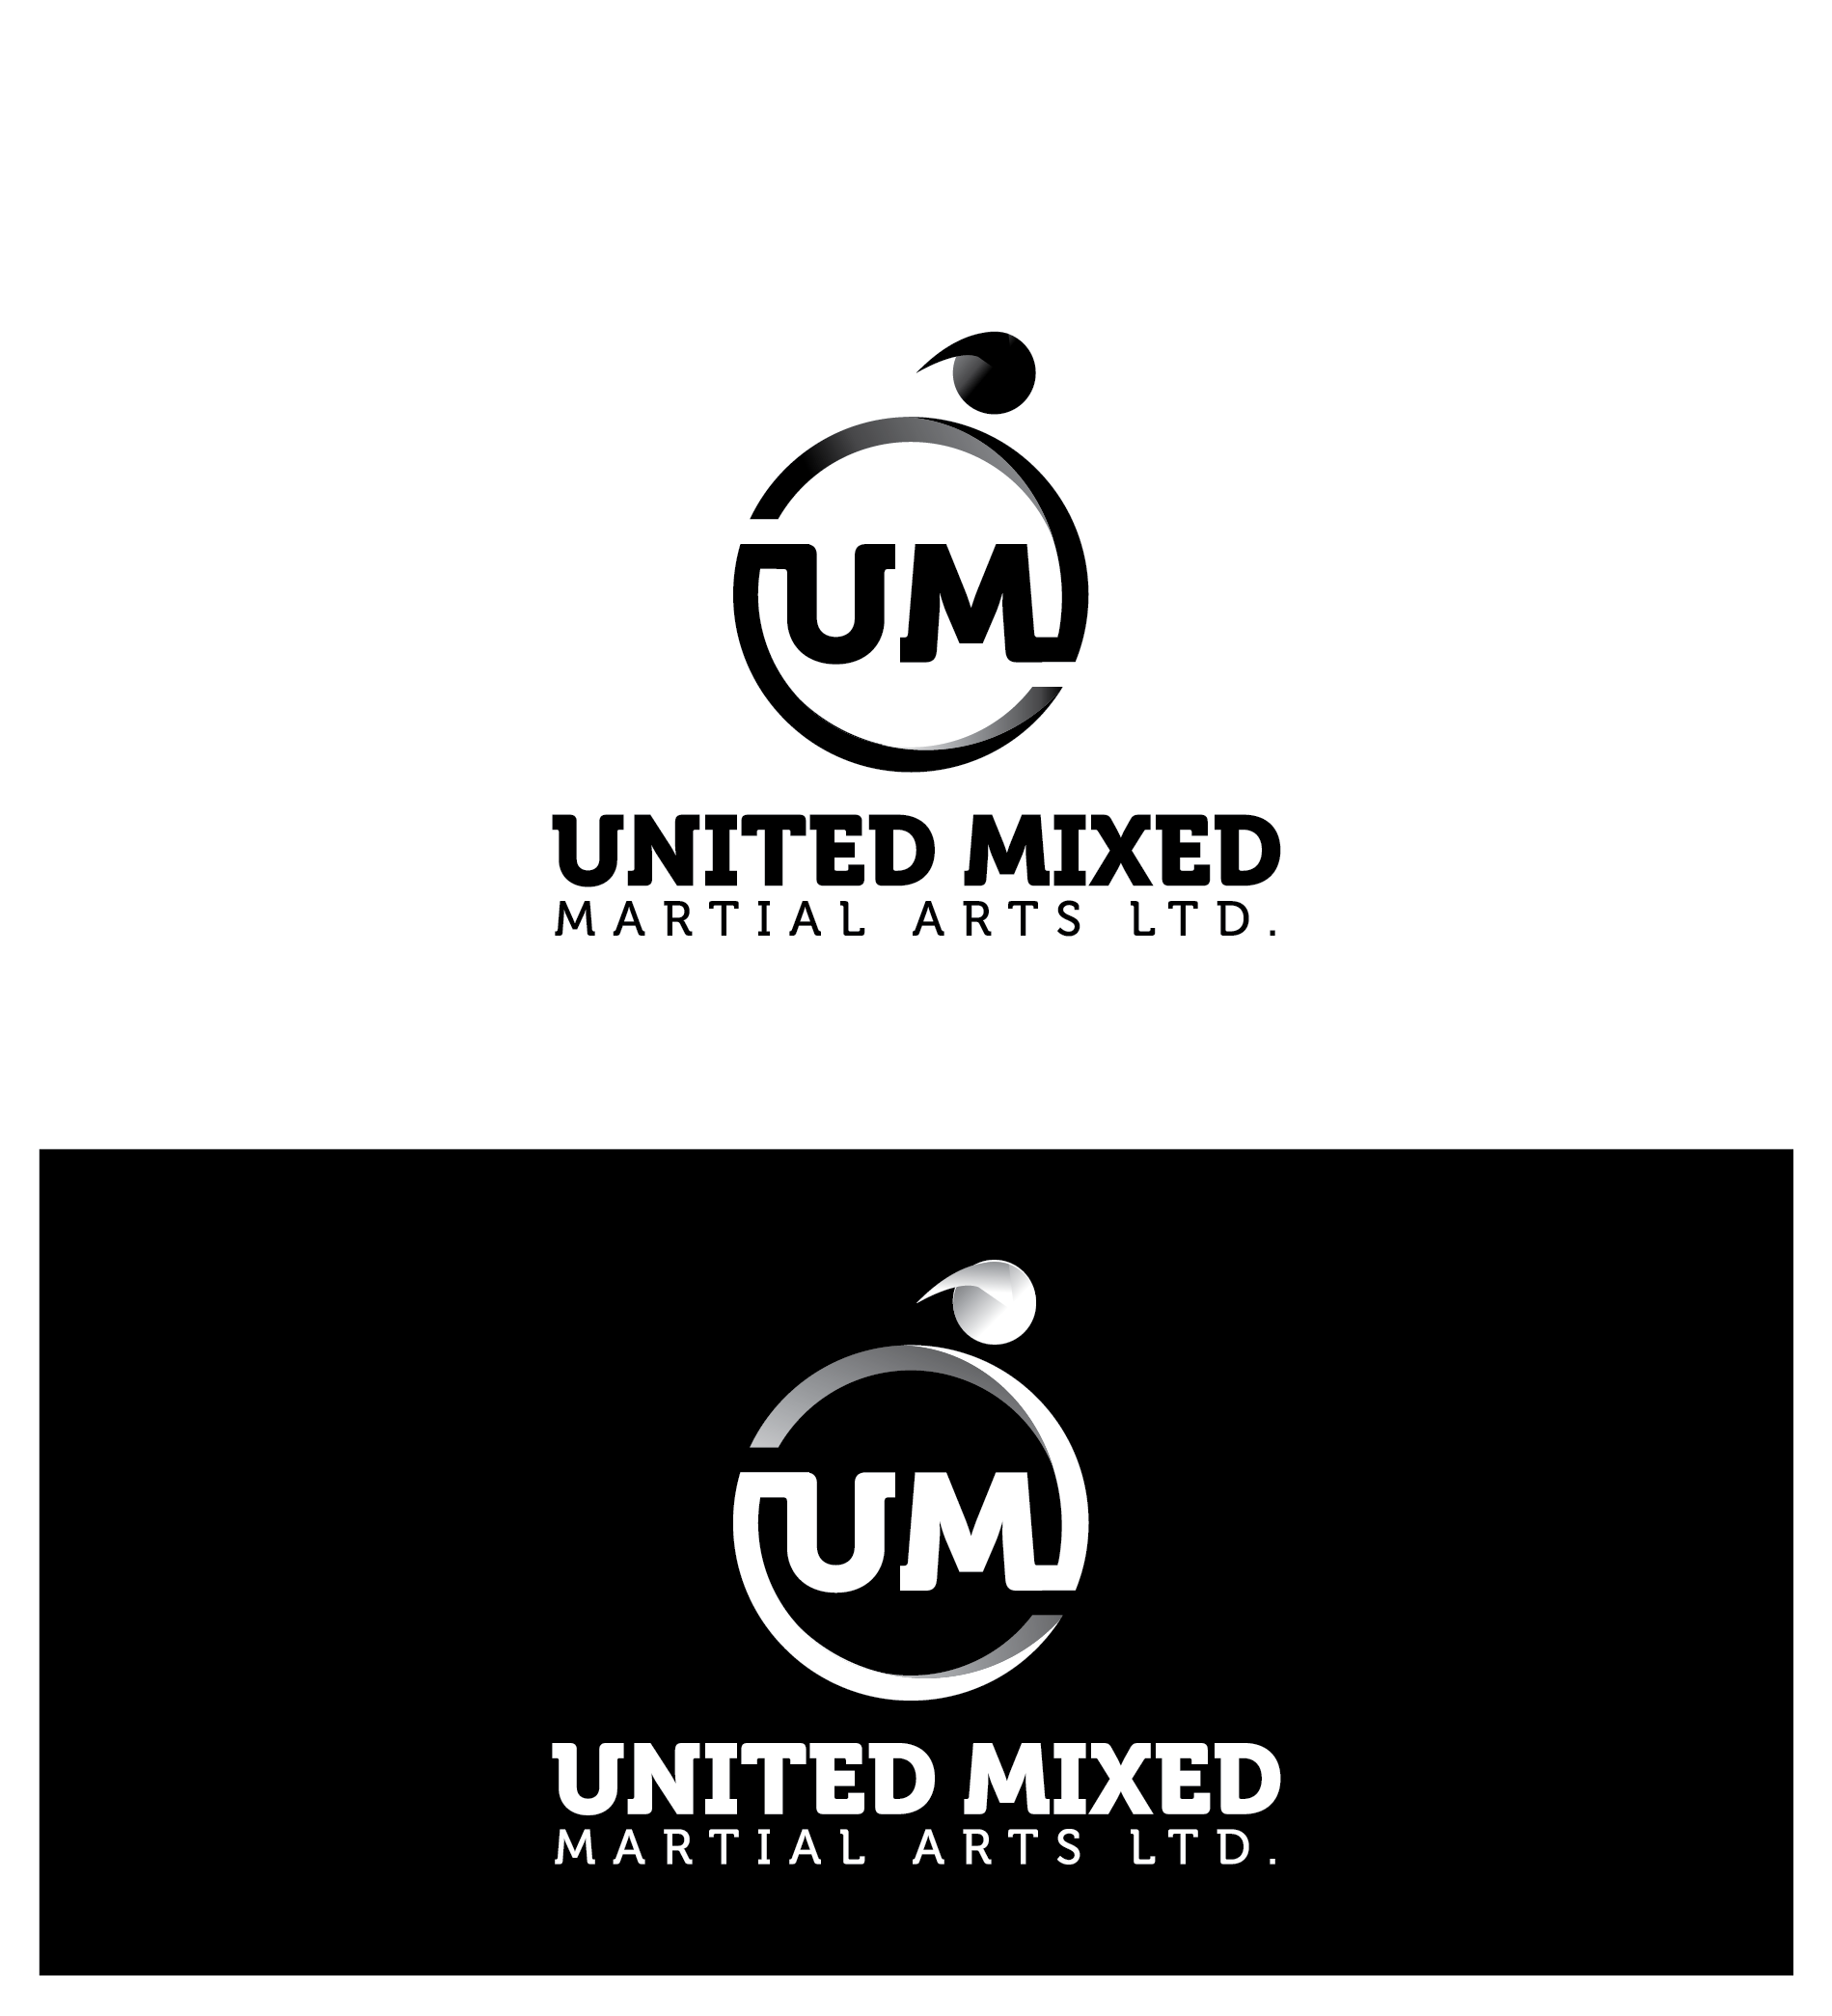 Logo Design by Prohor Ghagra - Entry No. 75 in the Logo Design Contest Artistic Logo Design for United Mixed Martial Arts Ltd..